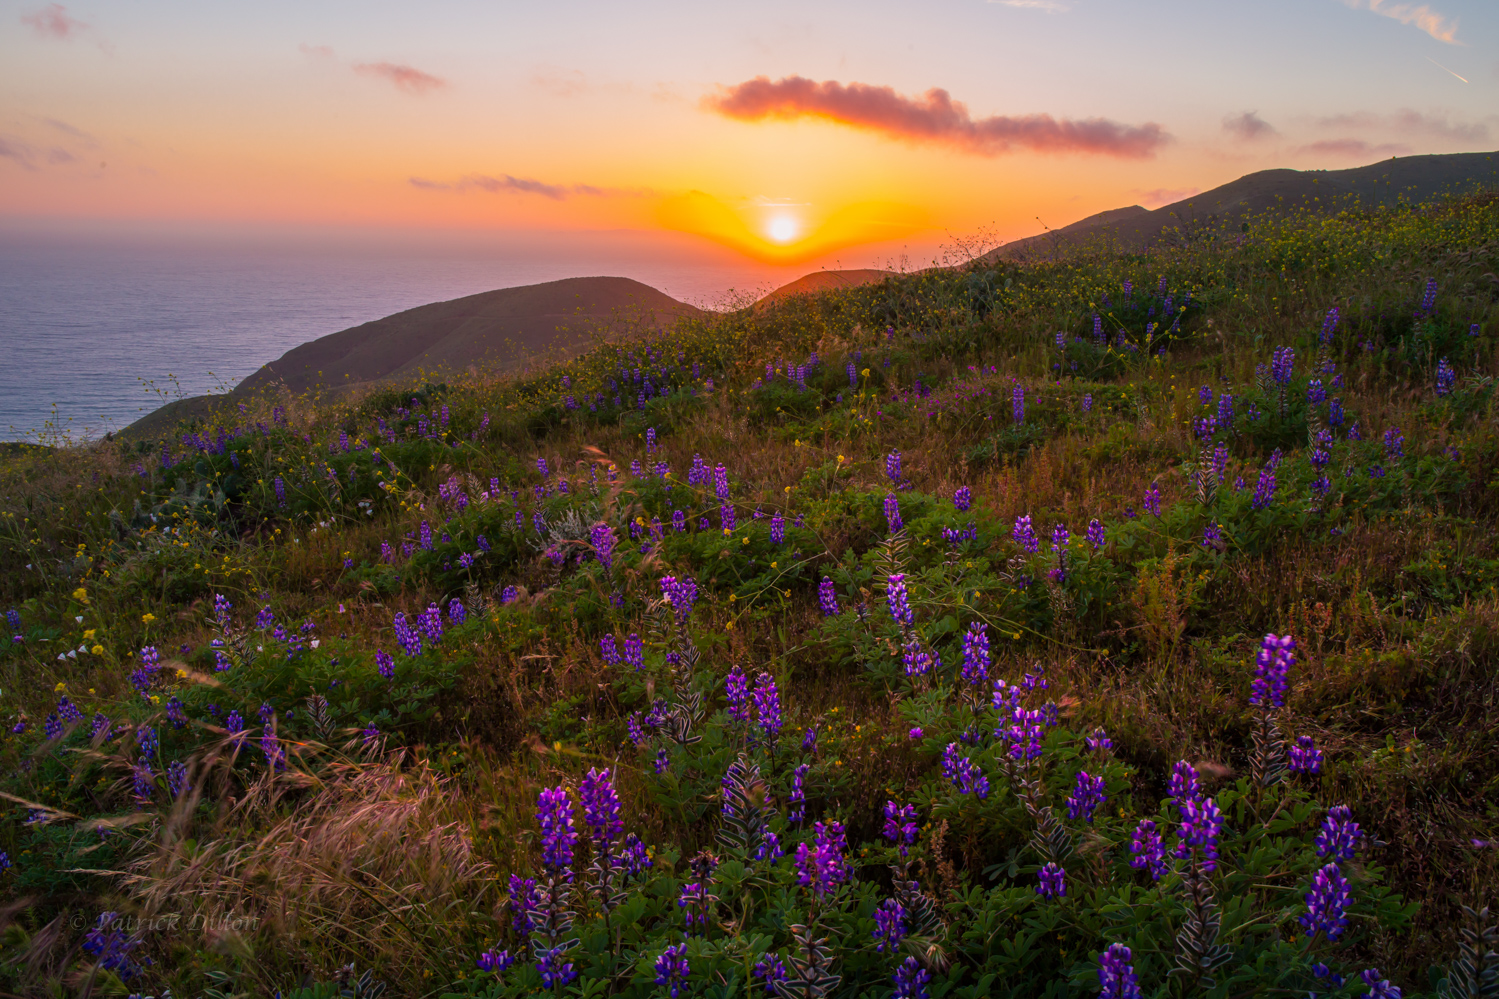 Malibu sunset with lupine and sun